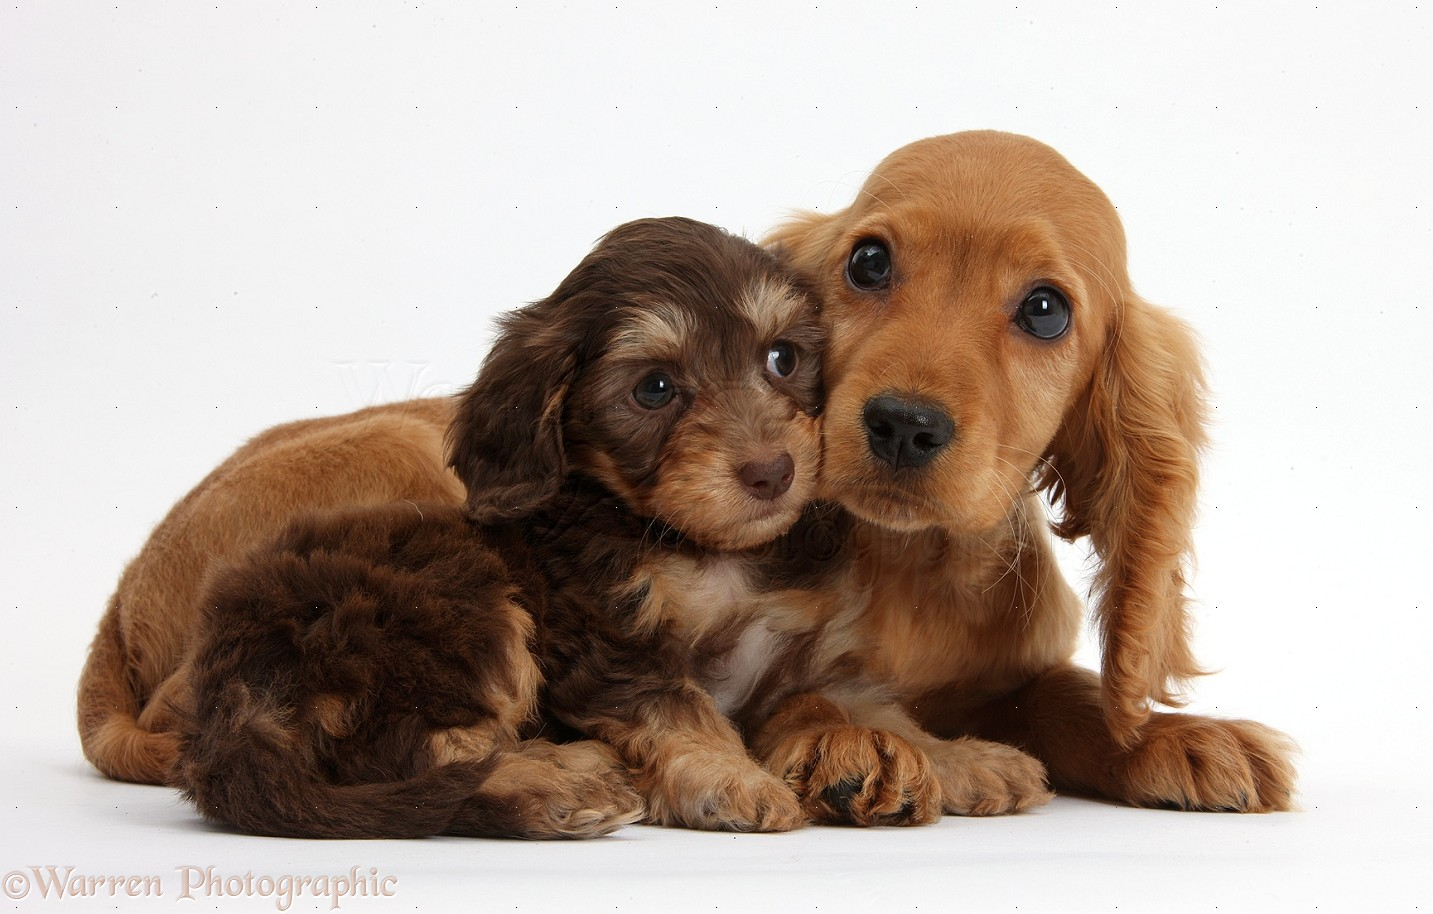 Dogs Cute Daxiedoodle And Golden Cocker Spaniel Puppies Photo Wp37258